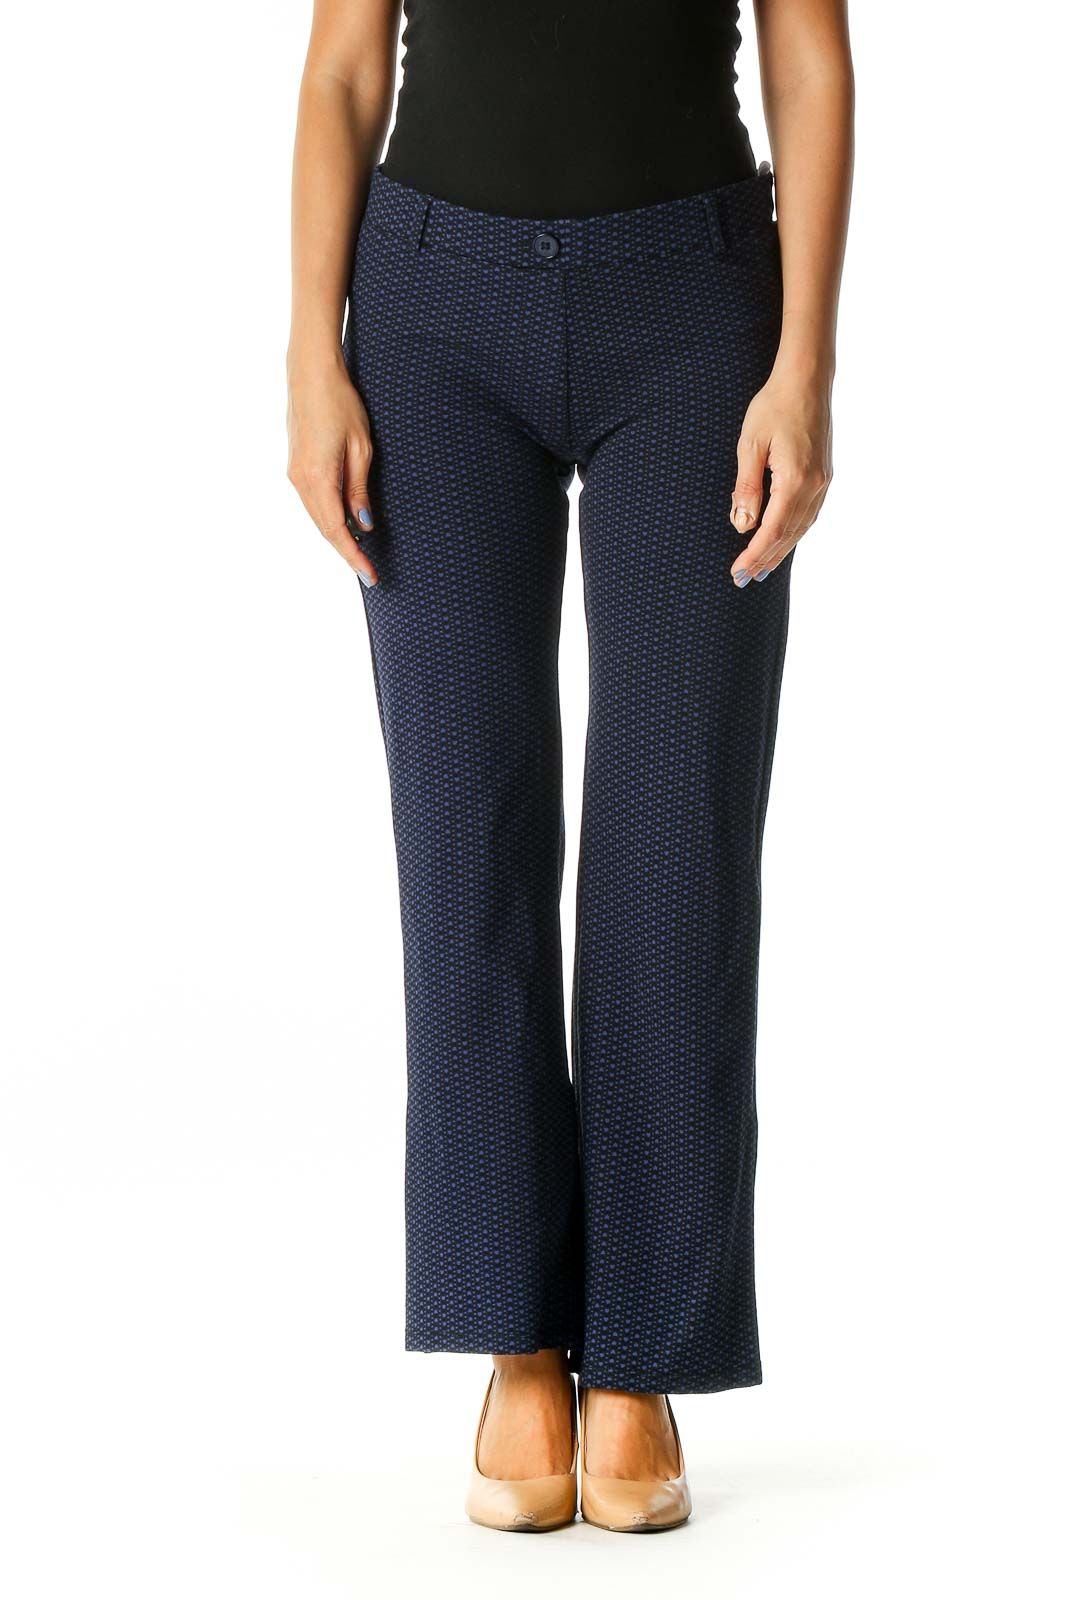 Blue Polka Dot Casual Trousers Front